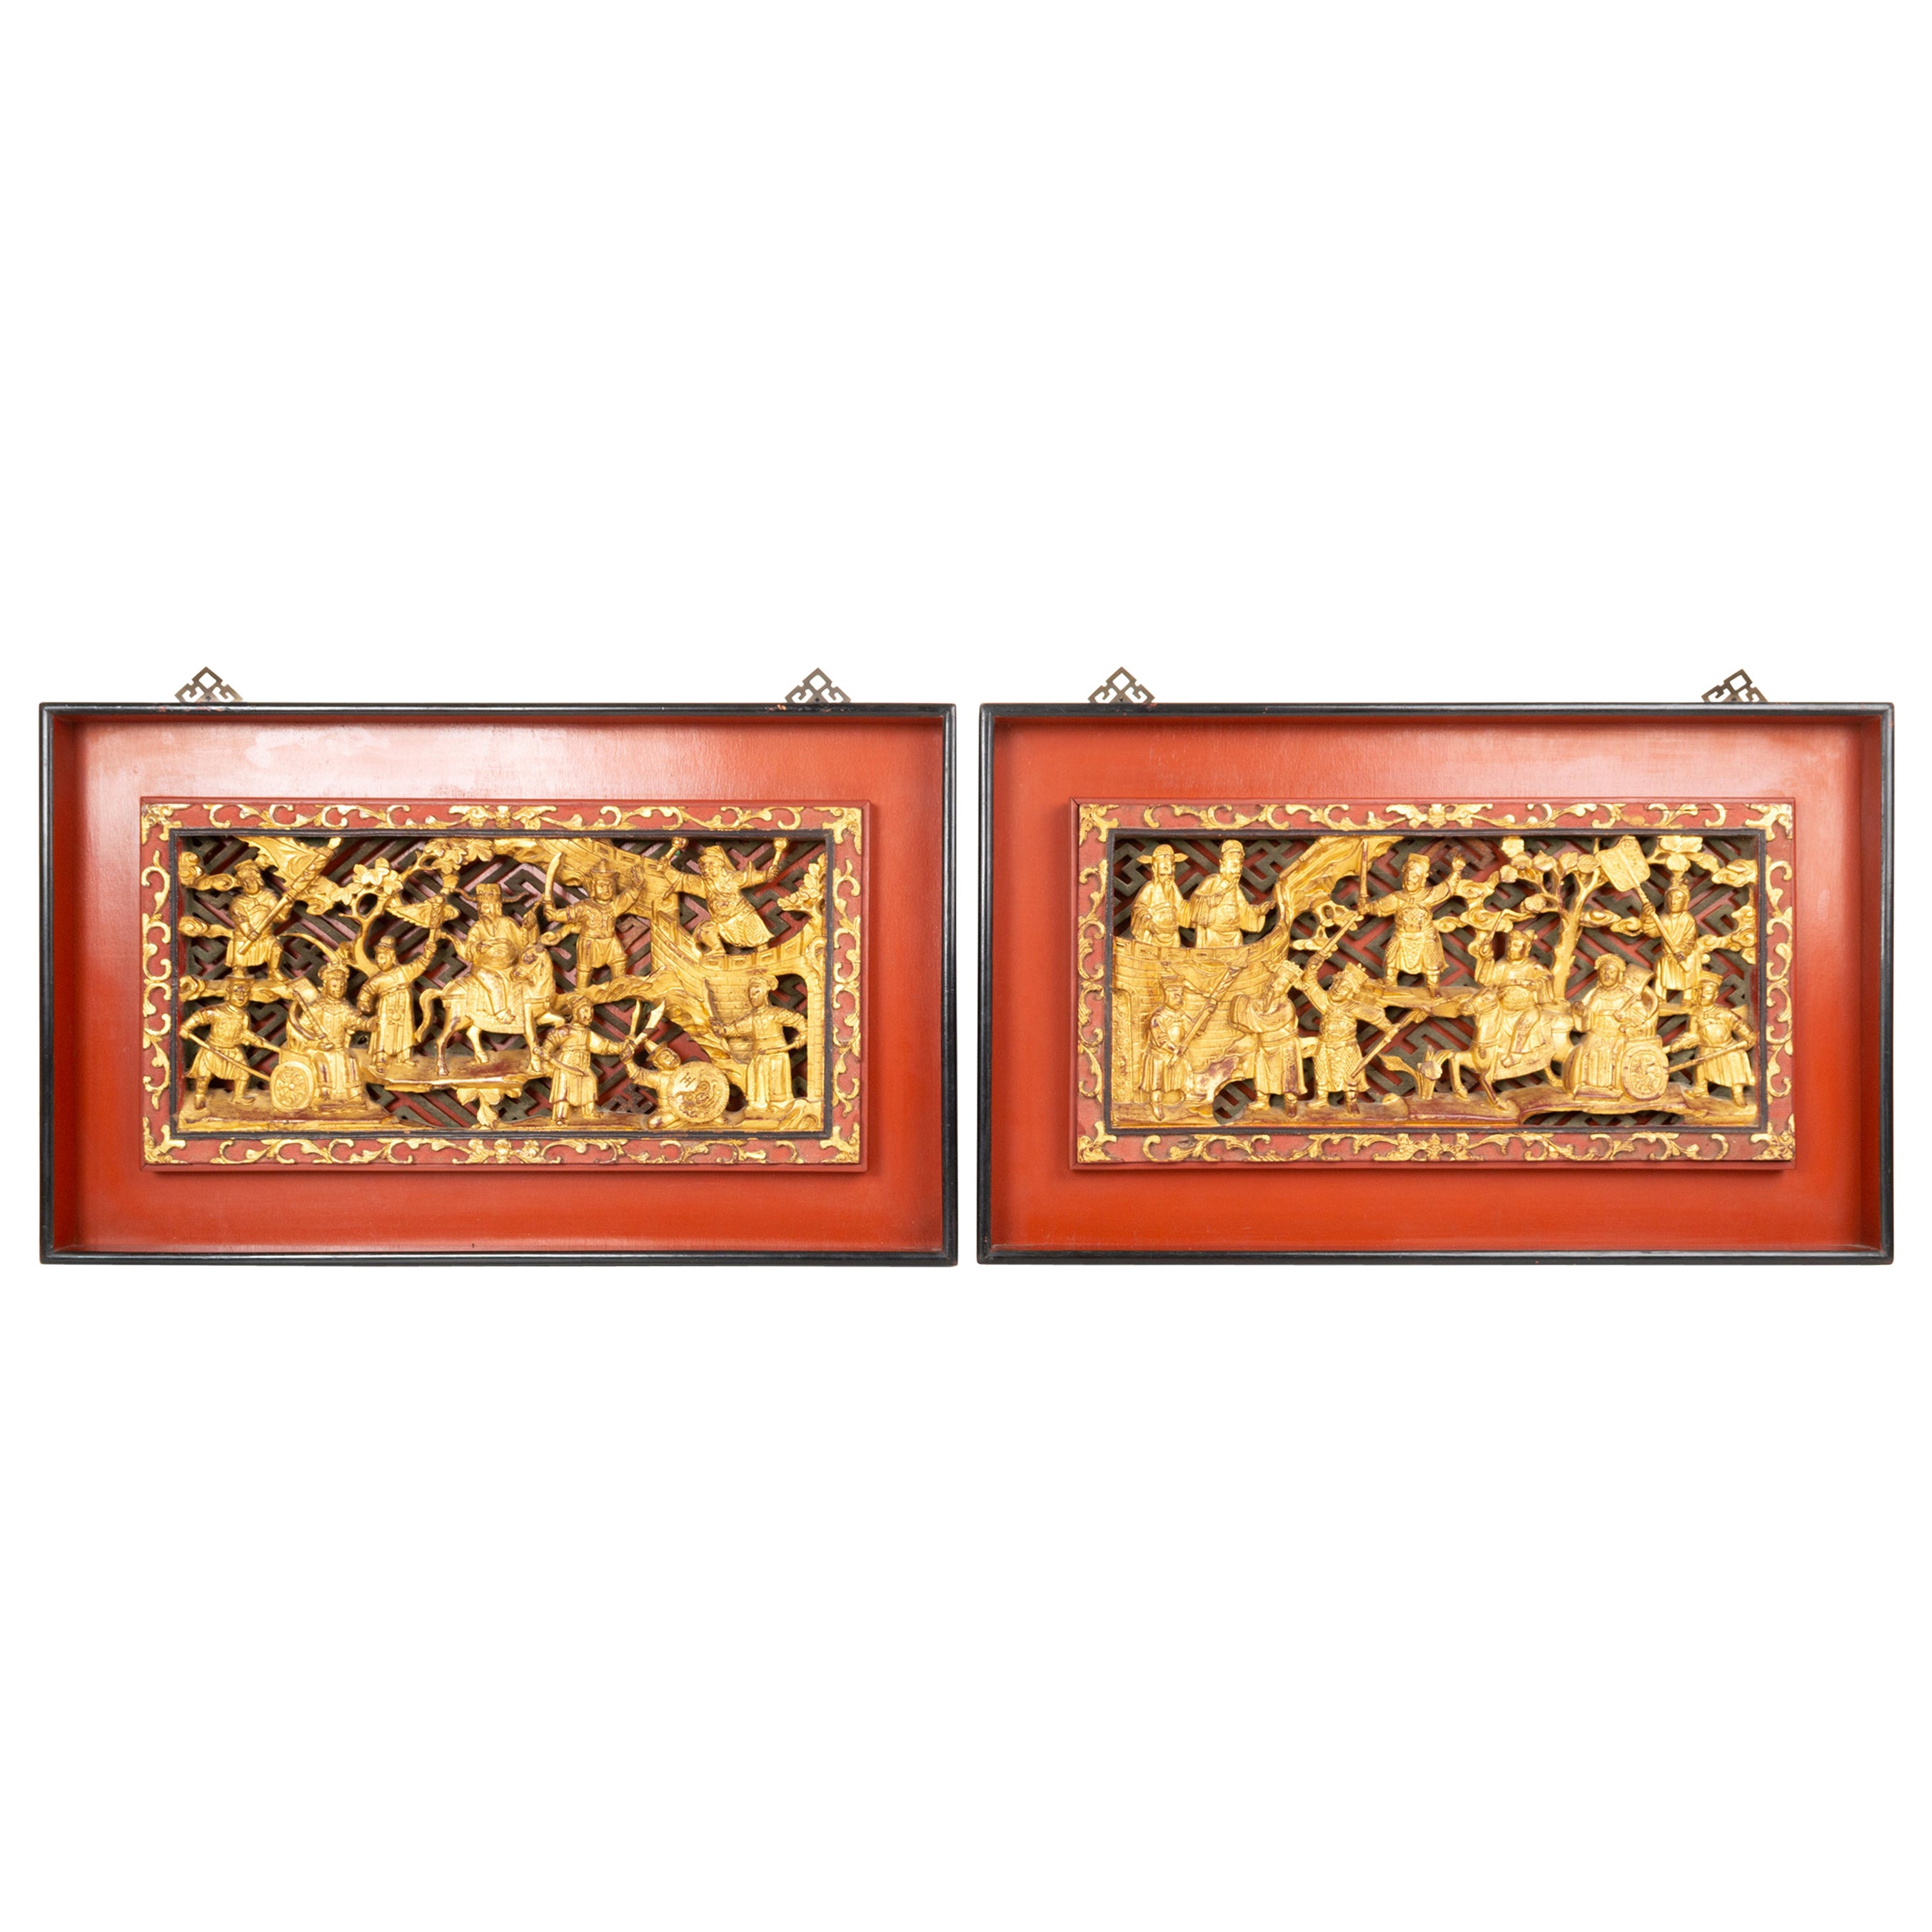 Pair of Chinese Gold Gilded Carved Wood Wall Panels, China, C.1920